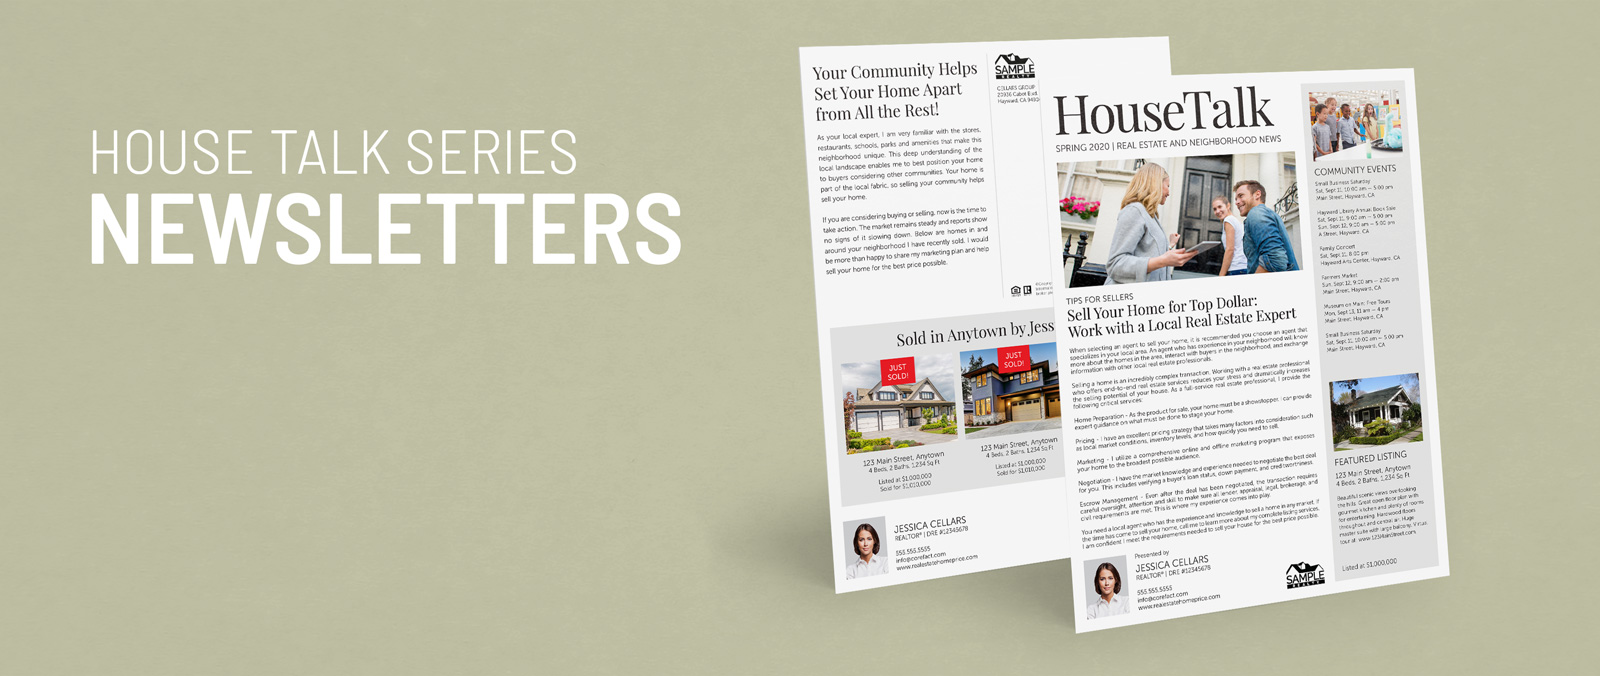 House Talk Series Newsletters